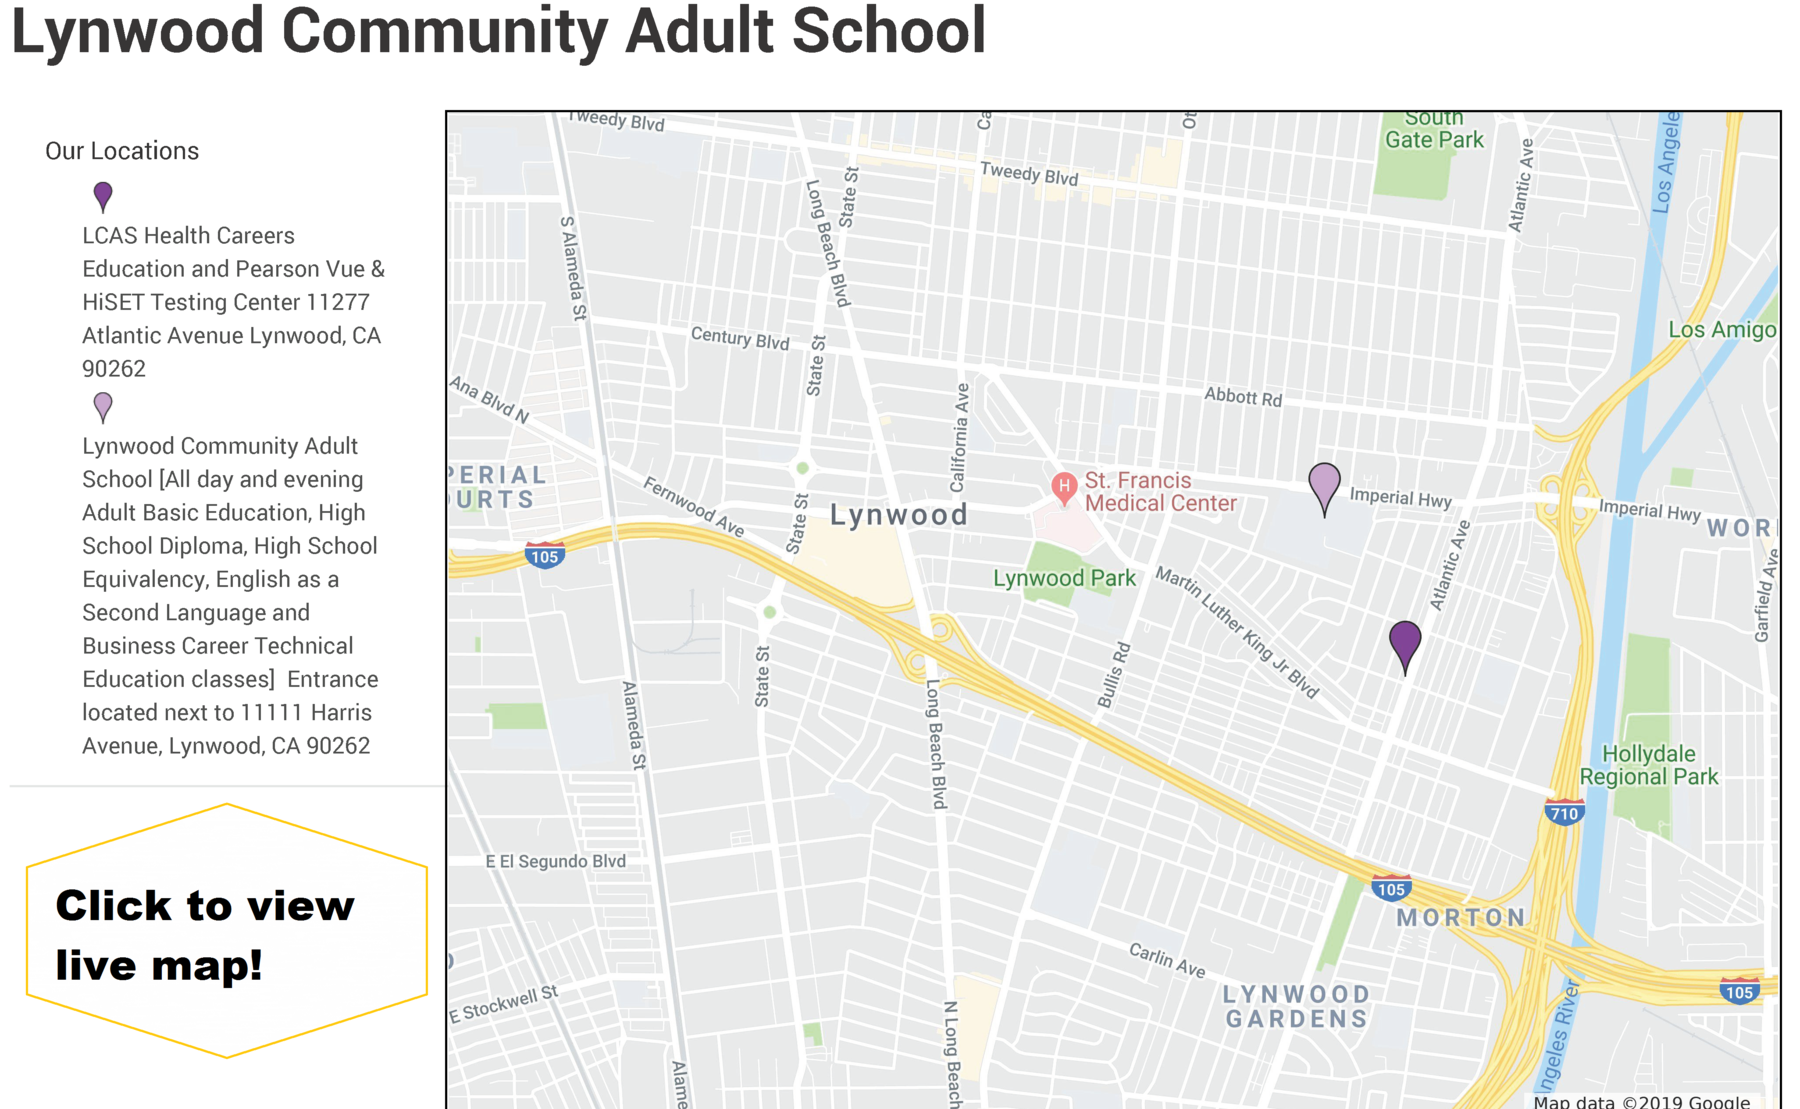 Map of Lynwood Community Adult School Locations